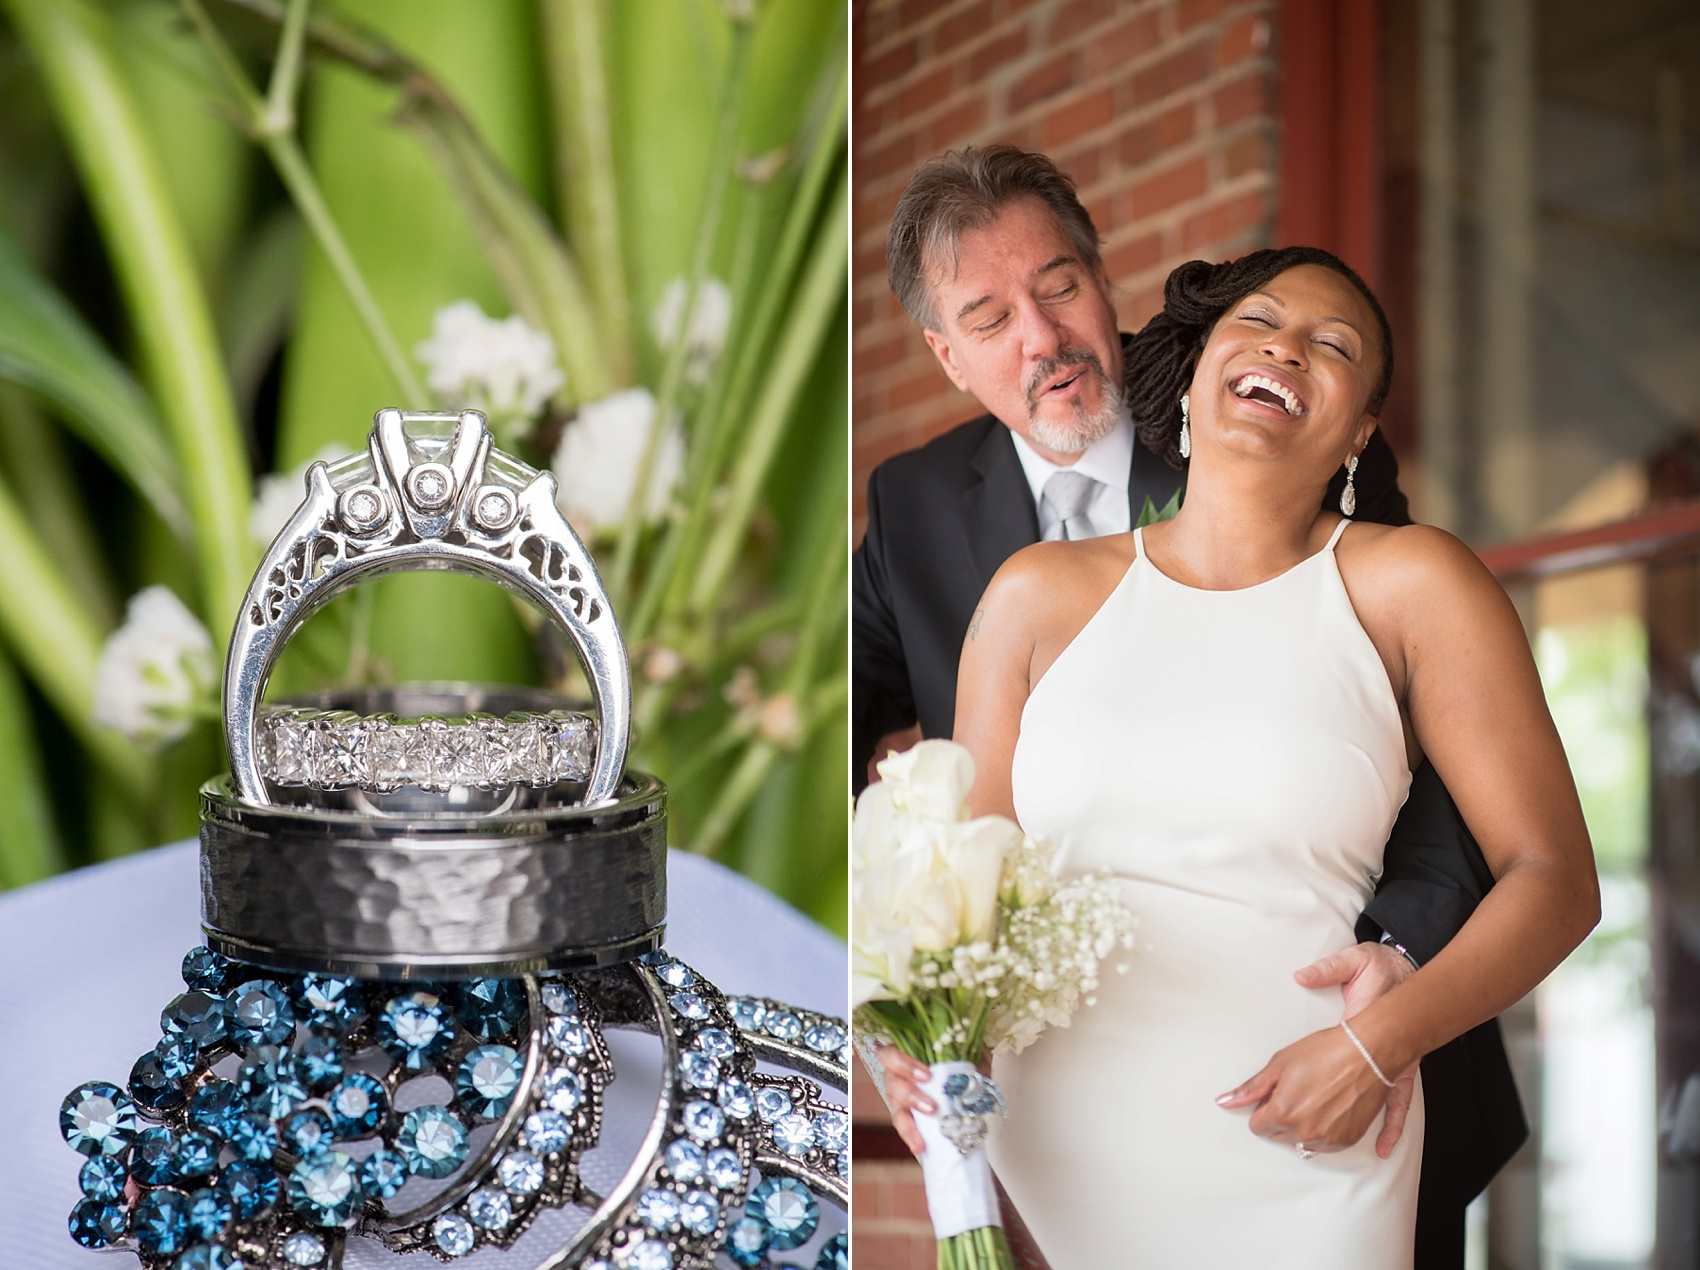 Downtown Raleigh, NC mixed race wedding. Photos by Mikkel Paige Photography. Photos of the bride and groom and ring detail.